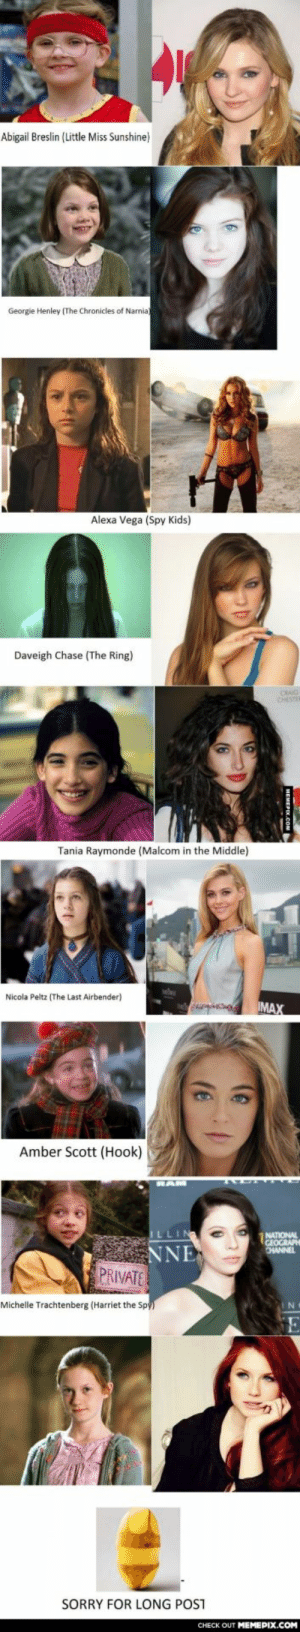 PUBERTY DONE RIGHTomg-humor.tumblr.com: Abigail Breslin (Little Miss Sunshine)  Georgie Henley (The Chronicles of Narnia  Alexa Vega (Spy Kids)  Daveigh Chase (The Ring)  CHESTE  Tania Raymonde (Malcom in the Middle)  Nicola Peltz (The Last Airbender)  IMAX  Amber Scott (Hook)  ILLIN  NATIONAL  GEOGRAPH  CHANNEL  NNE  PRIVATE  Michelle Trachtenberg (Harriet the Spy)  IN  SORRY FOR LONG POST  CHECK OUT MEMEPIX.COM PUBERTY DONE RIGHTomg-humor.tumblr.com